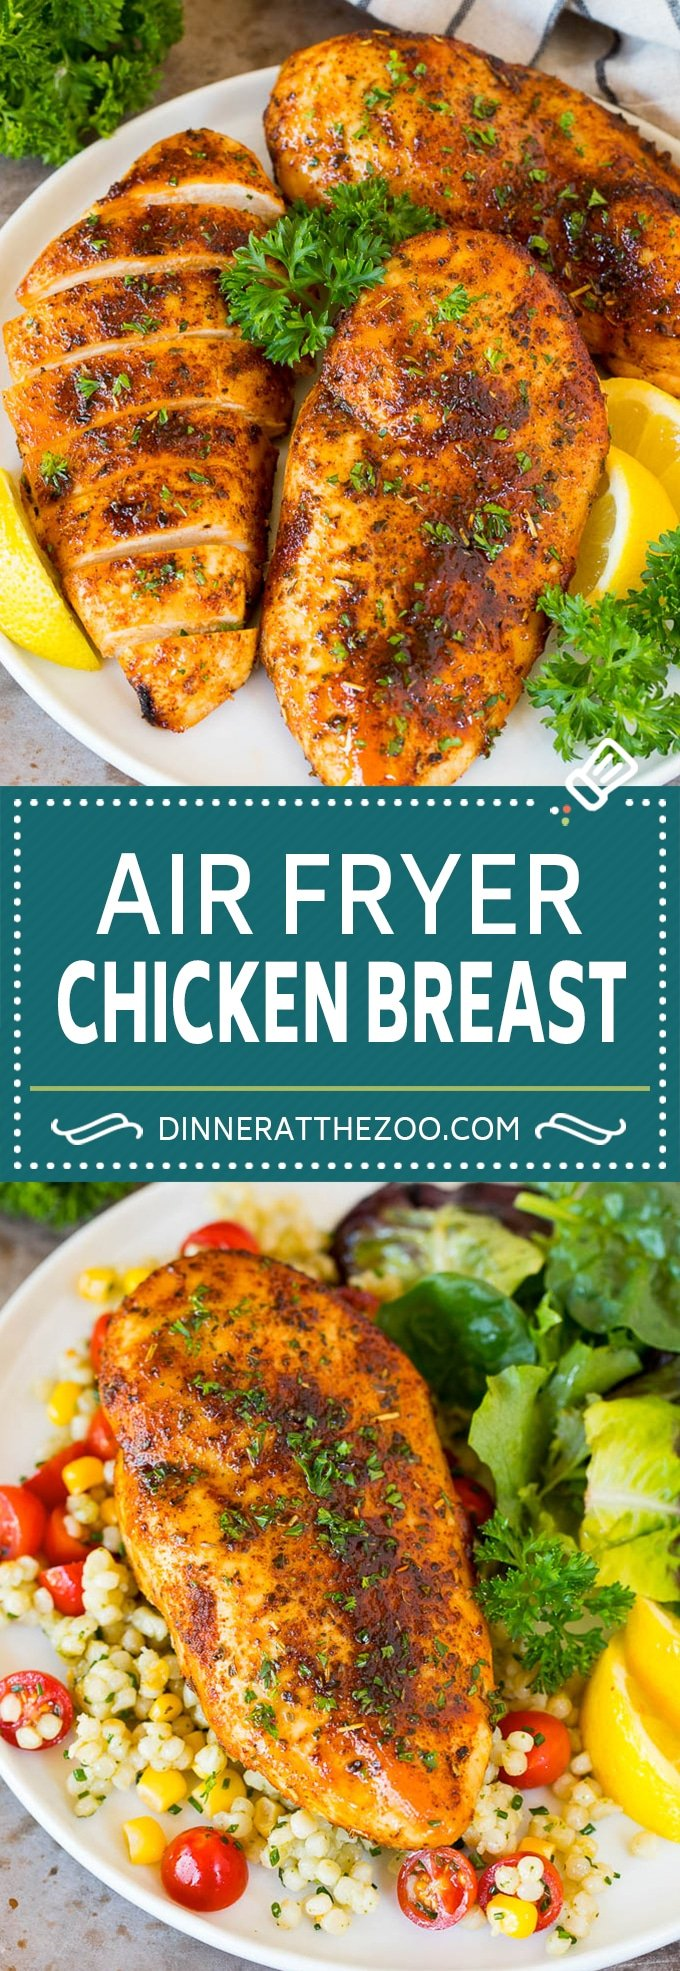 This air fryer chicken breast recipe consists of chicken coated in herbs and spices, then cooked to golden brown perfection.